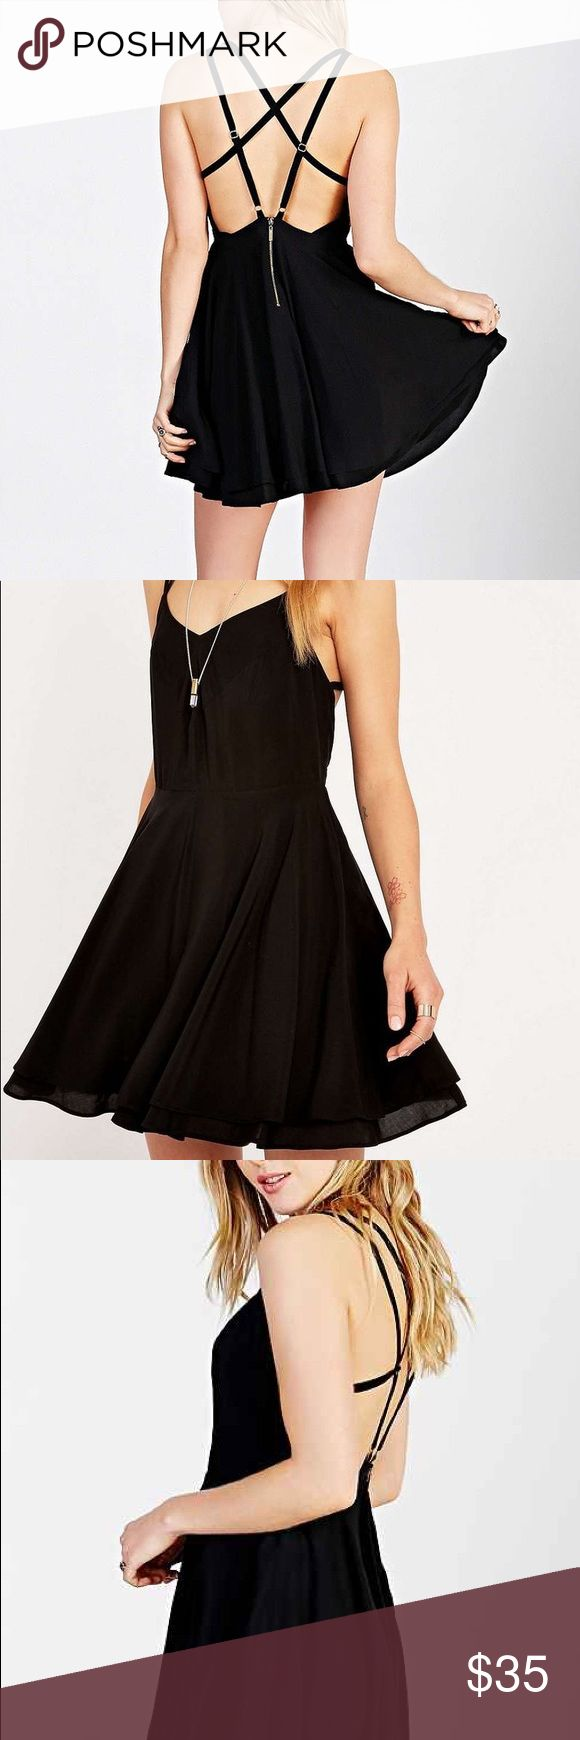 Kimchi Blue Strappy Black Fit Flare Scarlett Dress Worn Once Urban Outfitters Dresses Mini